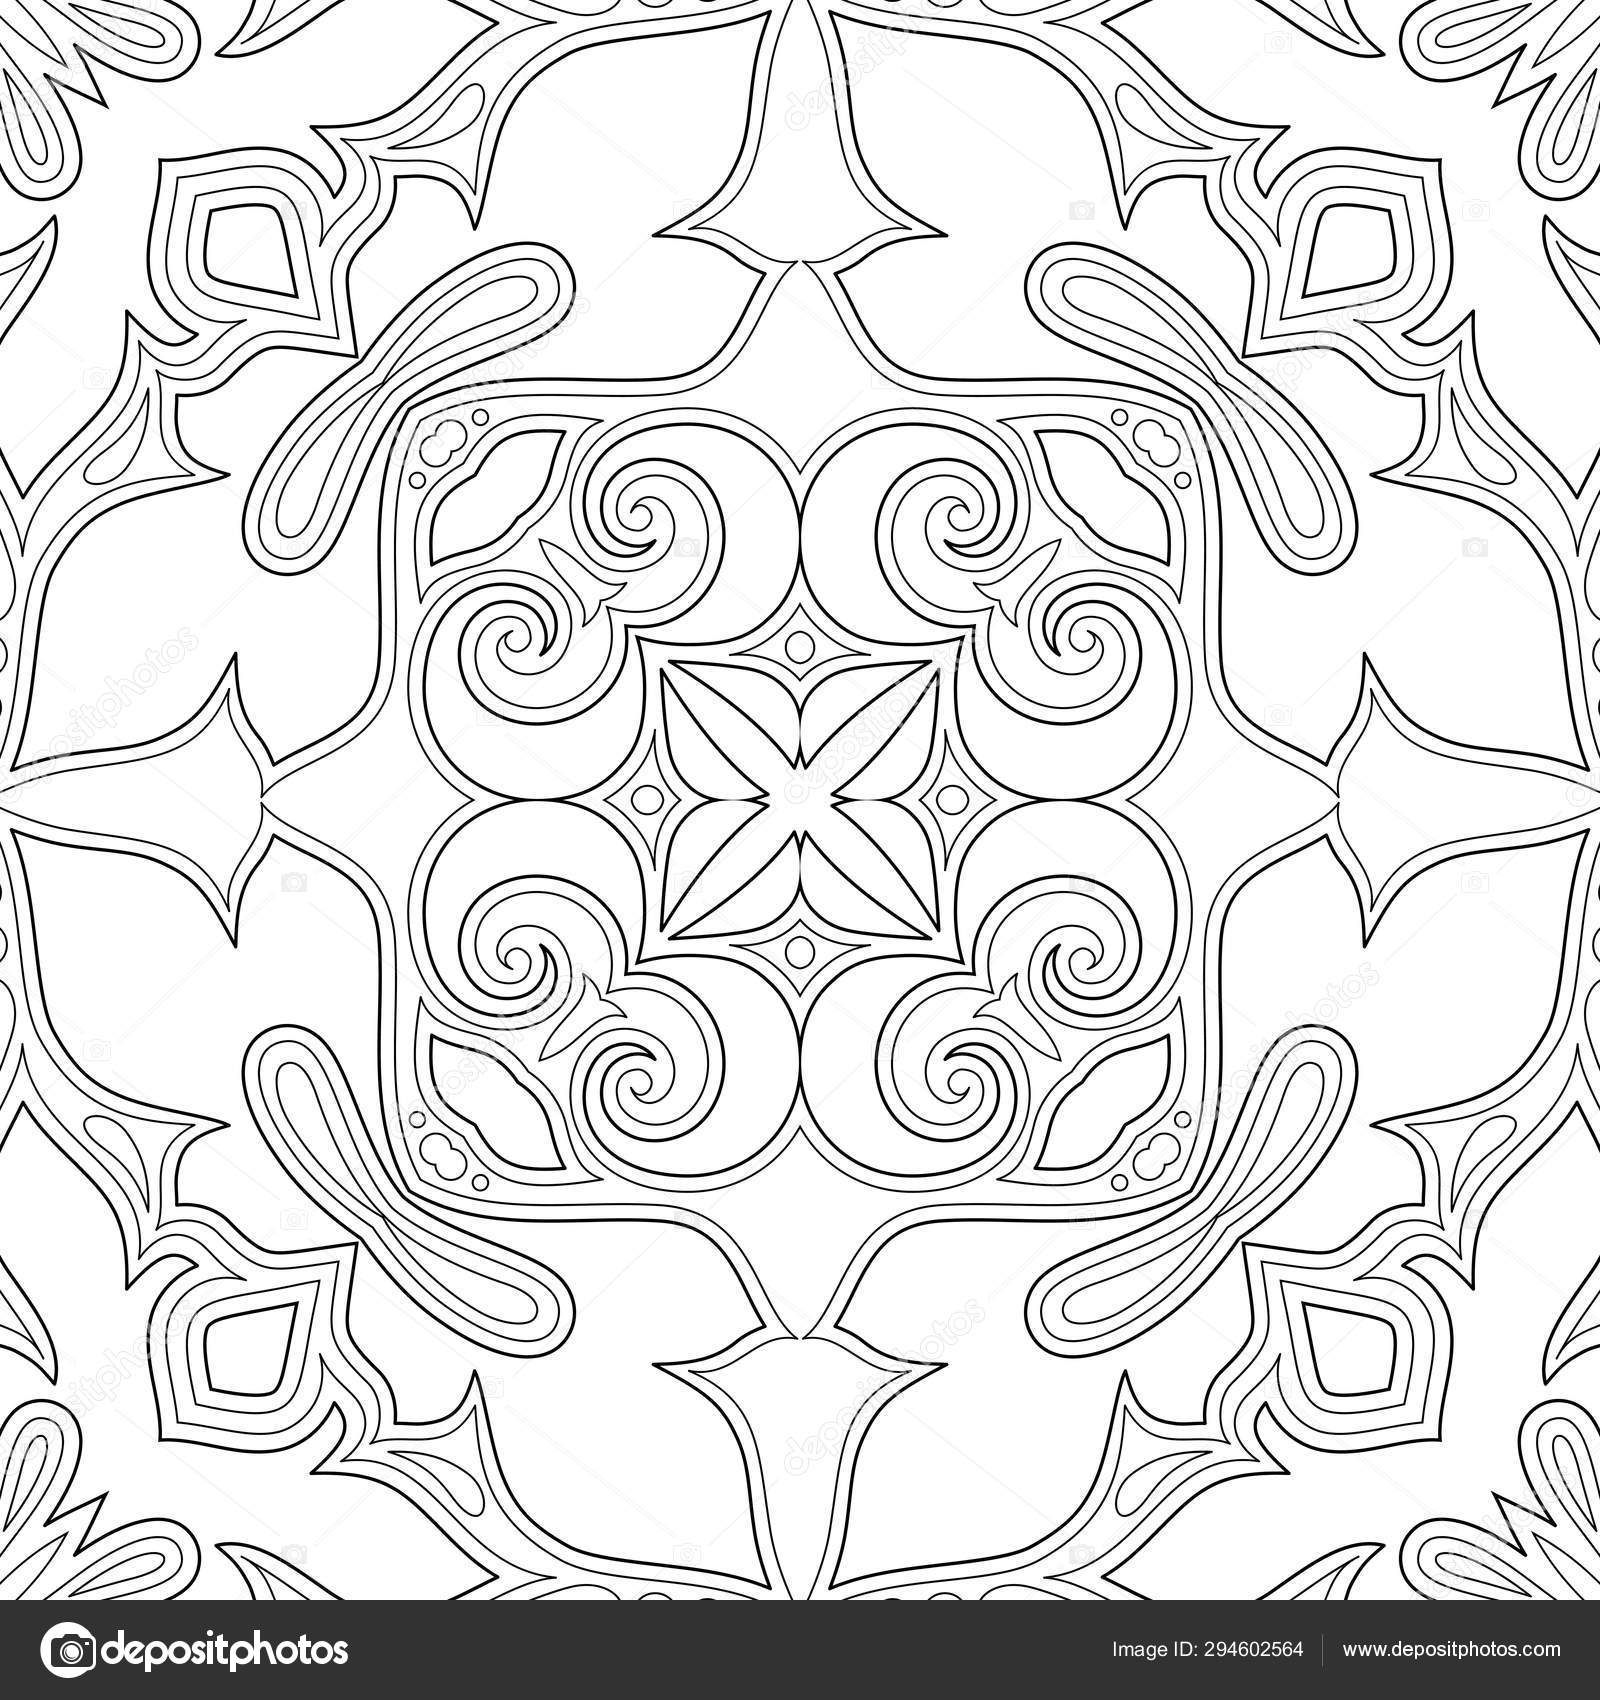 Mosaic coloring pages | Free Coloring Pages | 1700x1600